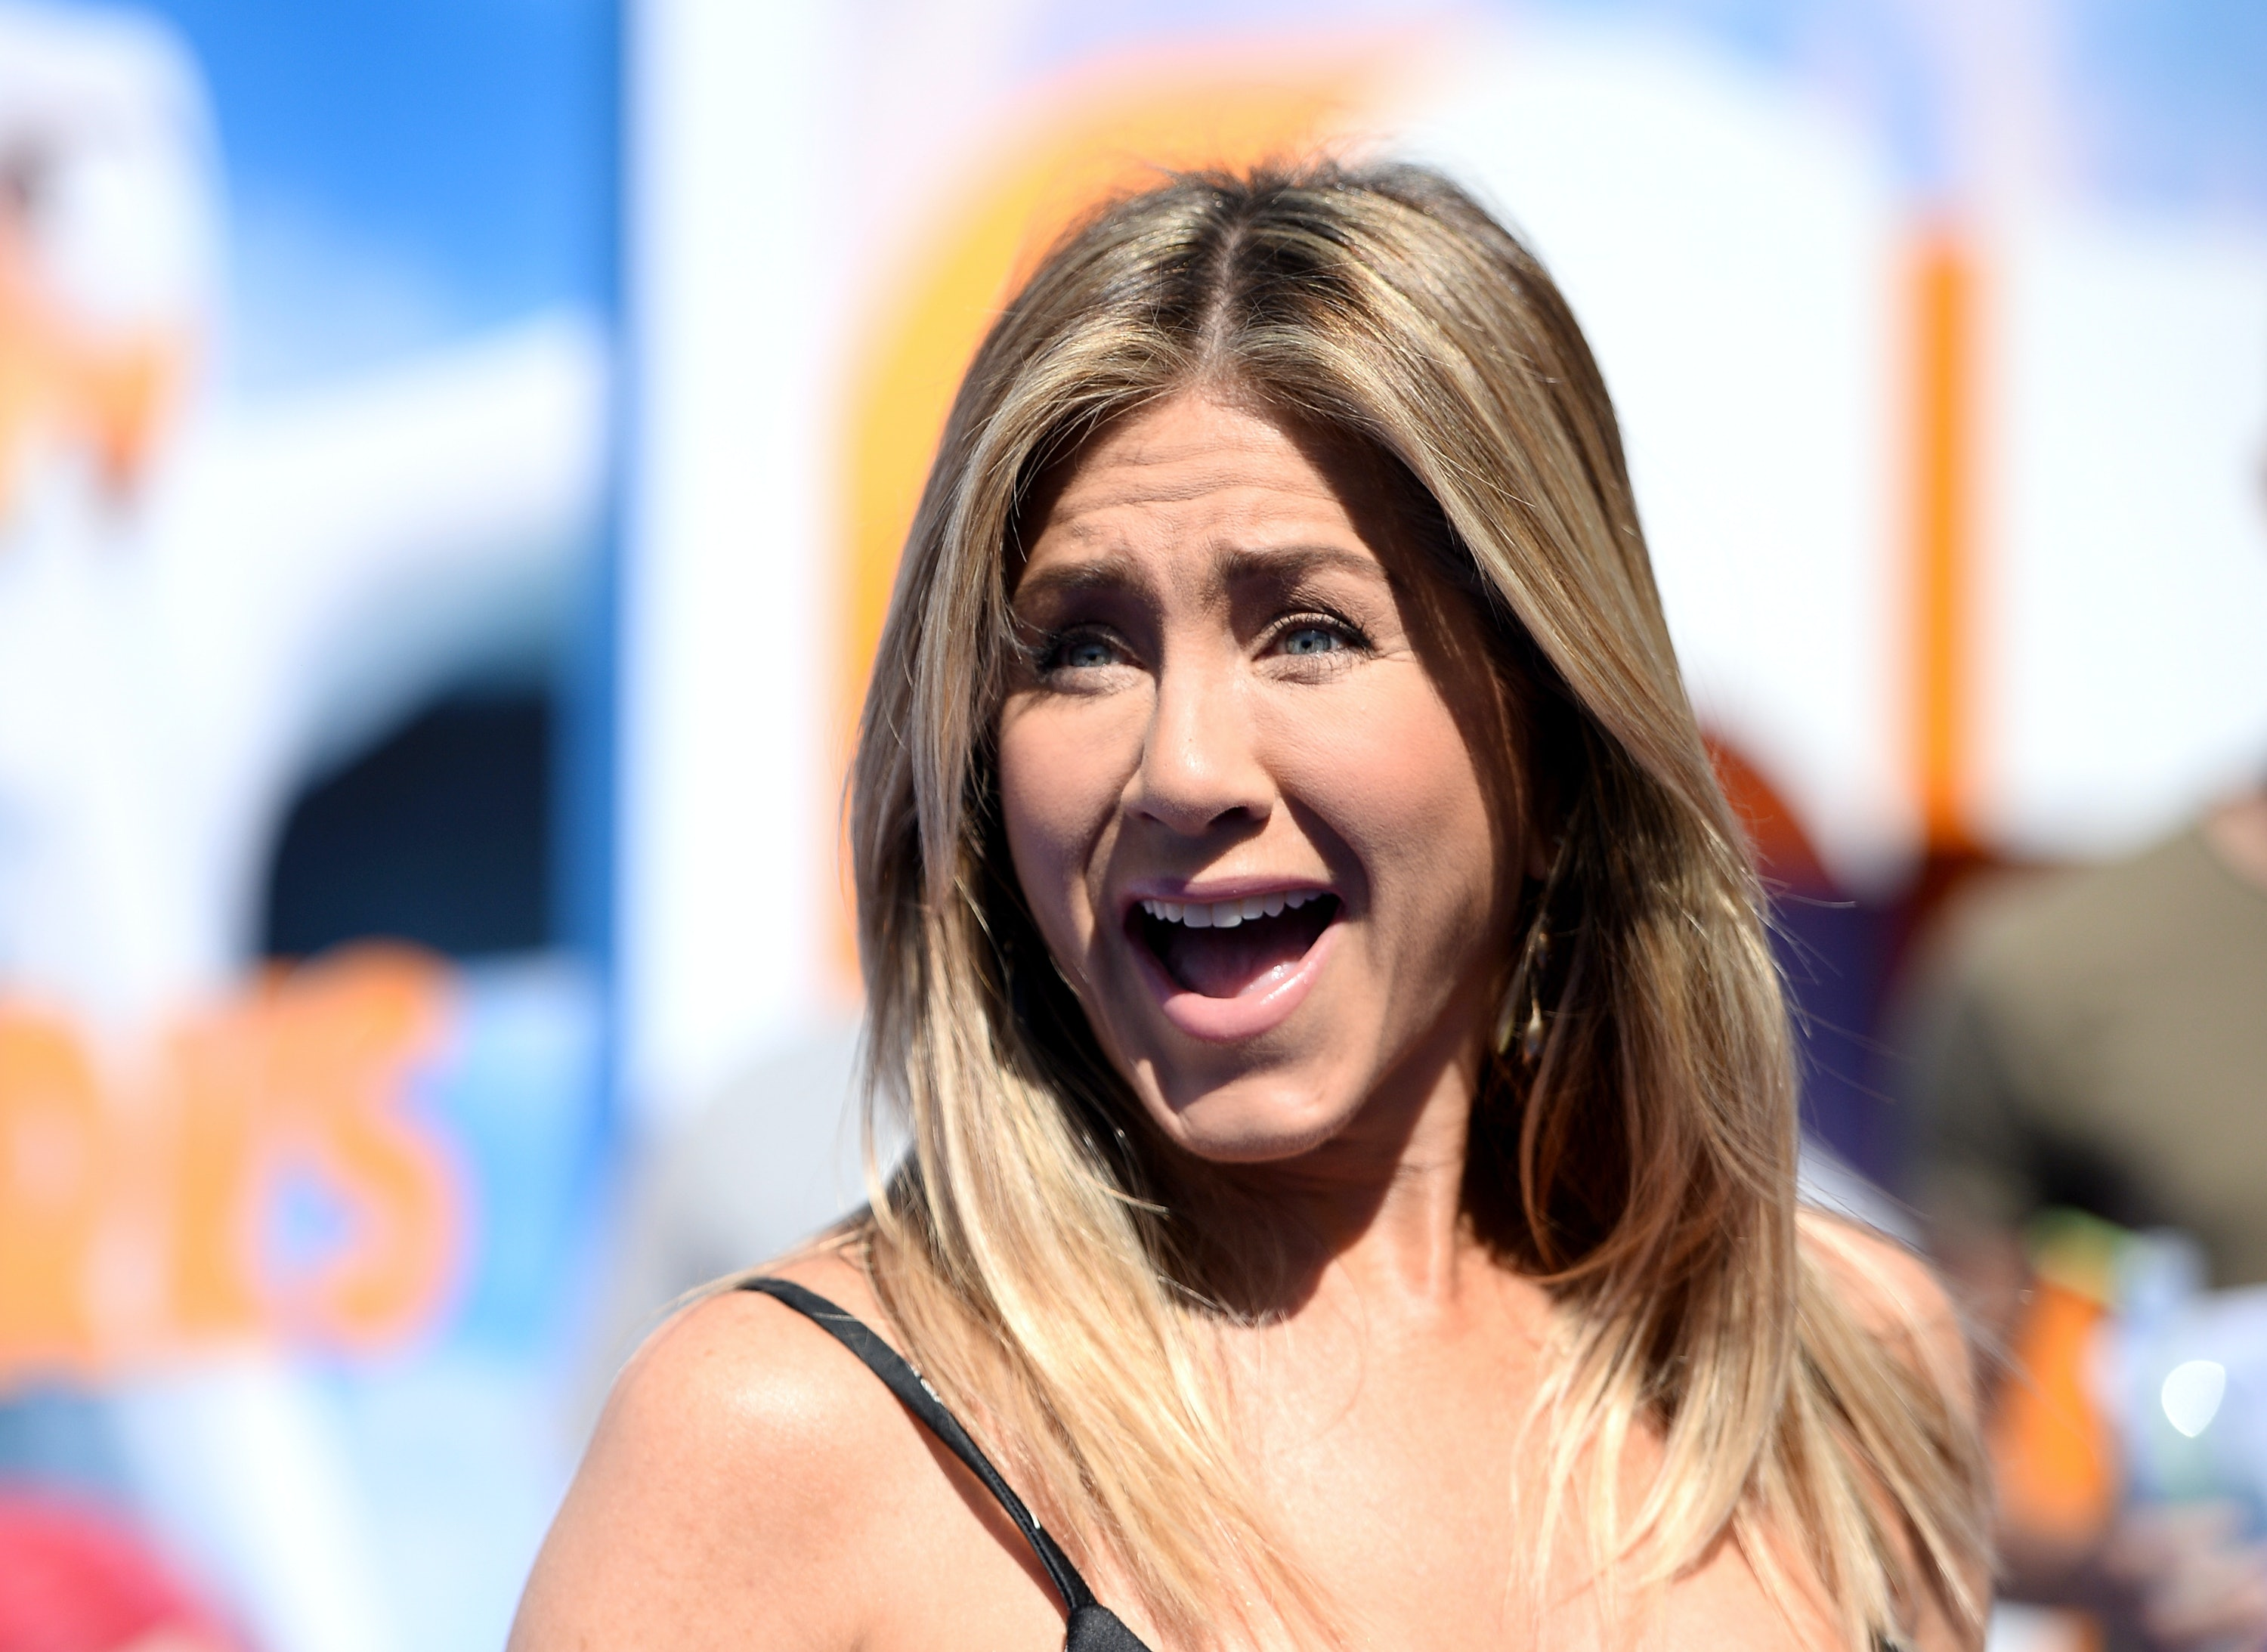 Jennifer Aniston crashes Saturday Night Live, critiques Vanessa Bayer's Rachel impression